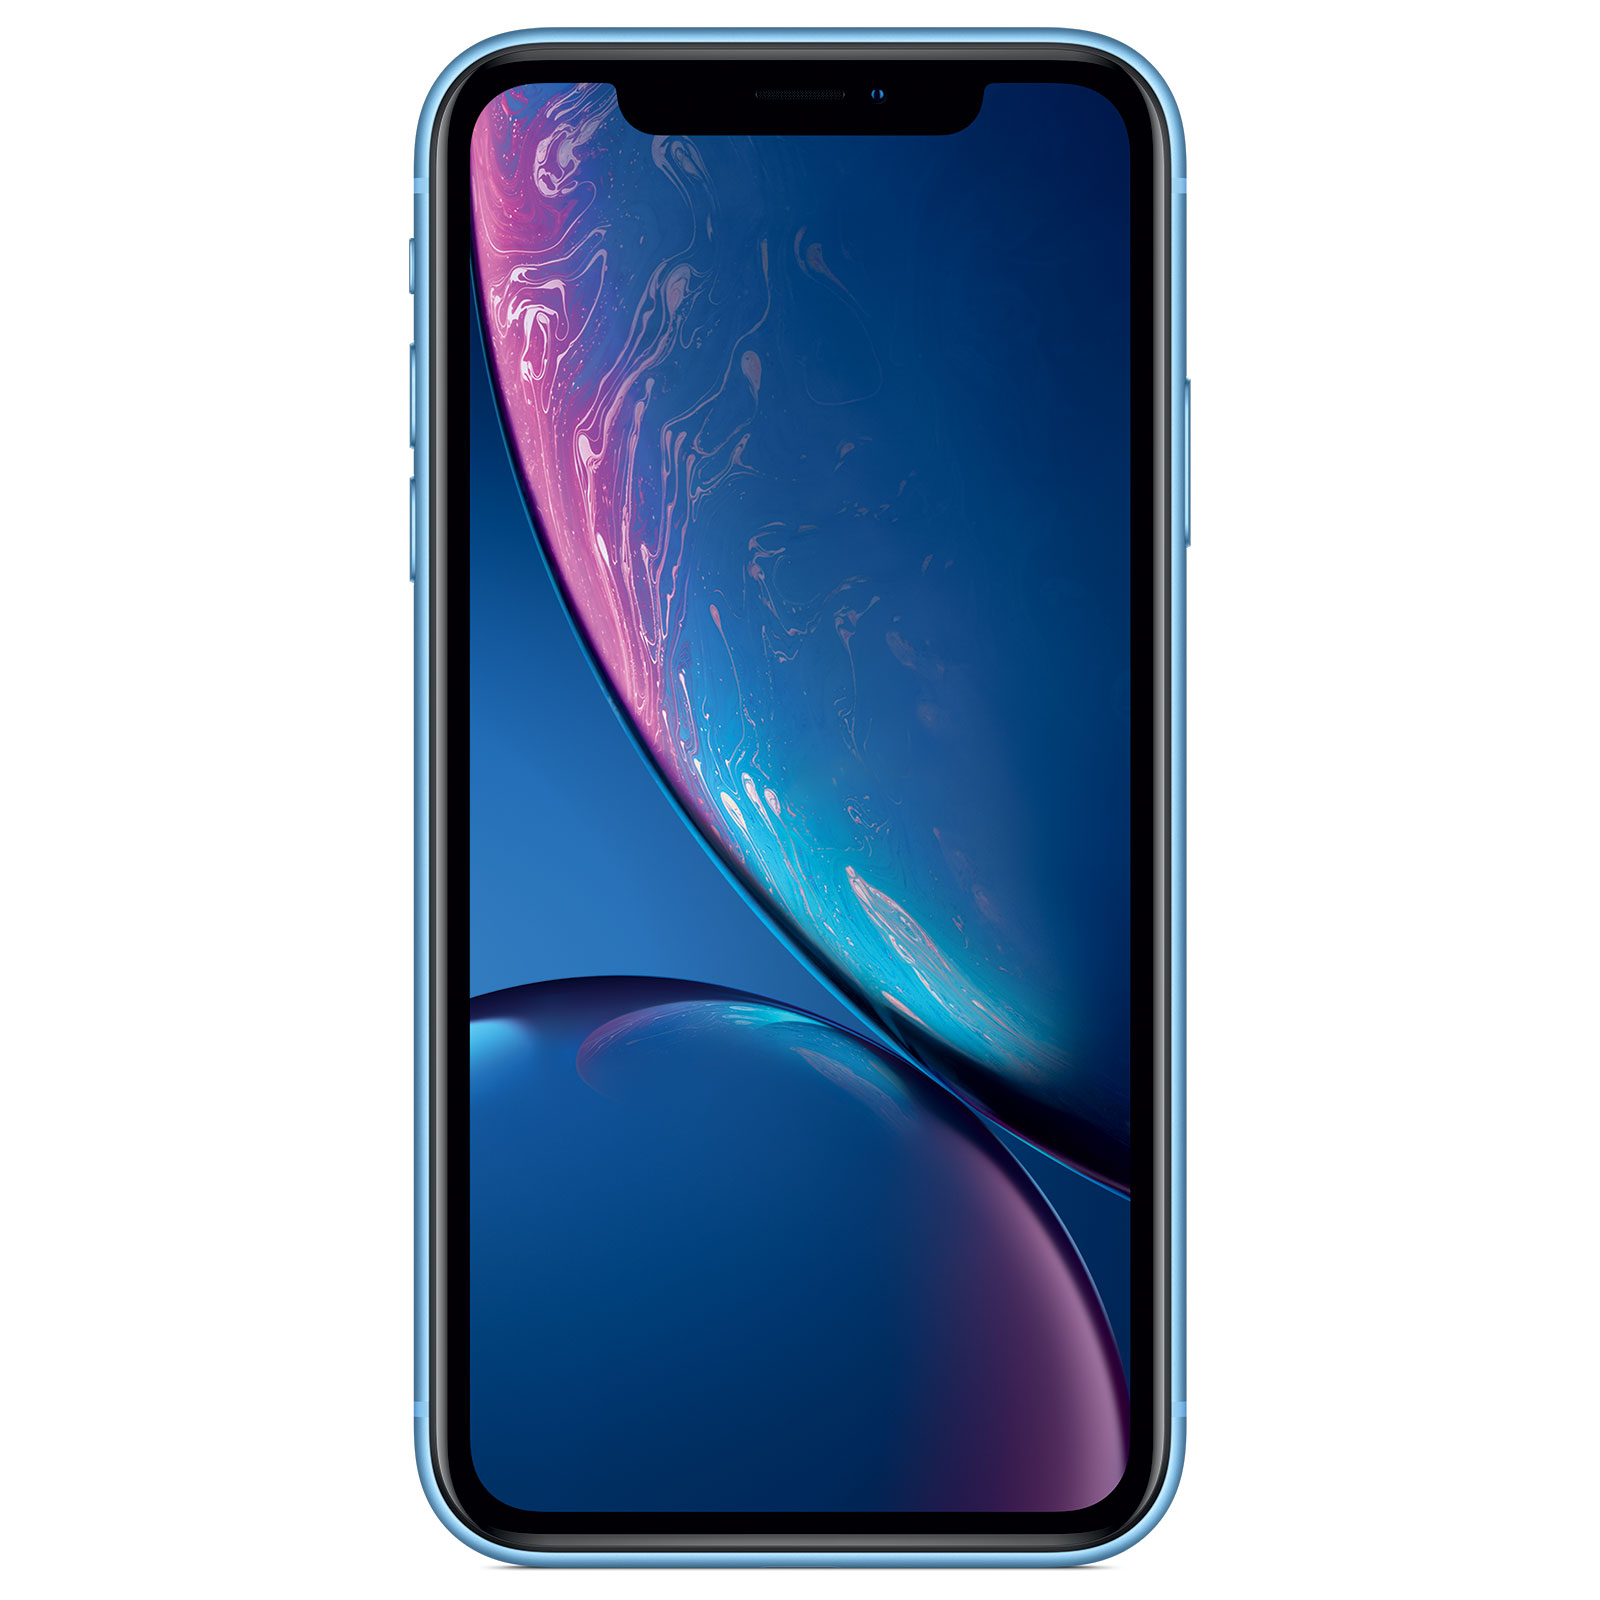 "Mobile & smartphone Apple iPhone XR 128 Go Bleu Smartphone 4G-LTE Advanced IP67 Dual SIM - Apple A12 Bionic Hexa-Core - RAM 3 Go - Ecran 6.1"" 828 x 1792 - 128 Go - NFC/Bluetooth 5.0 - iOS 12"